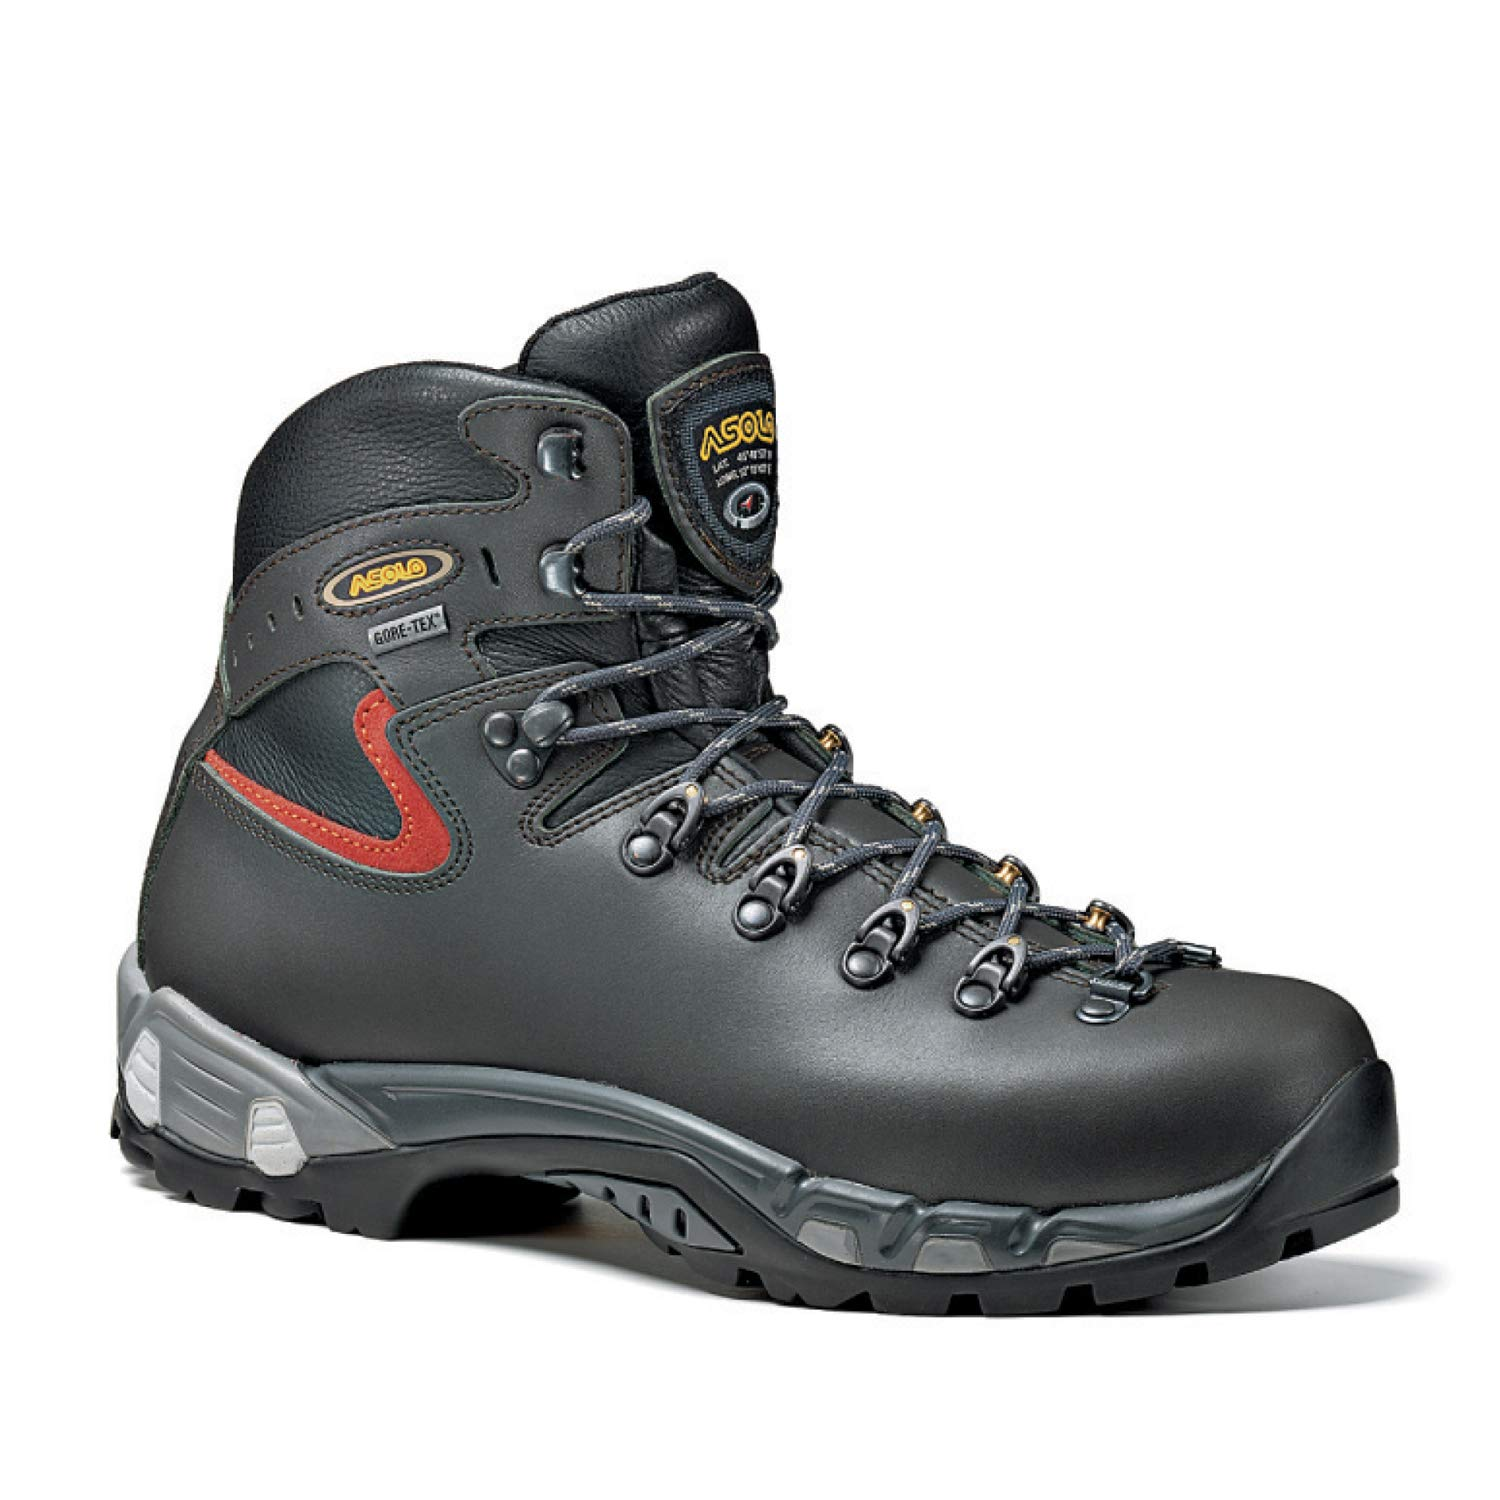 Asolo Power Matic 200 GV Men's Waterproof Hiking Boot for Backpacking, Technical terrains, and Long Distance Hiking by Asolo